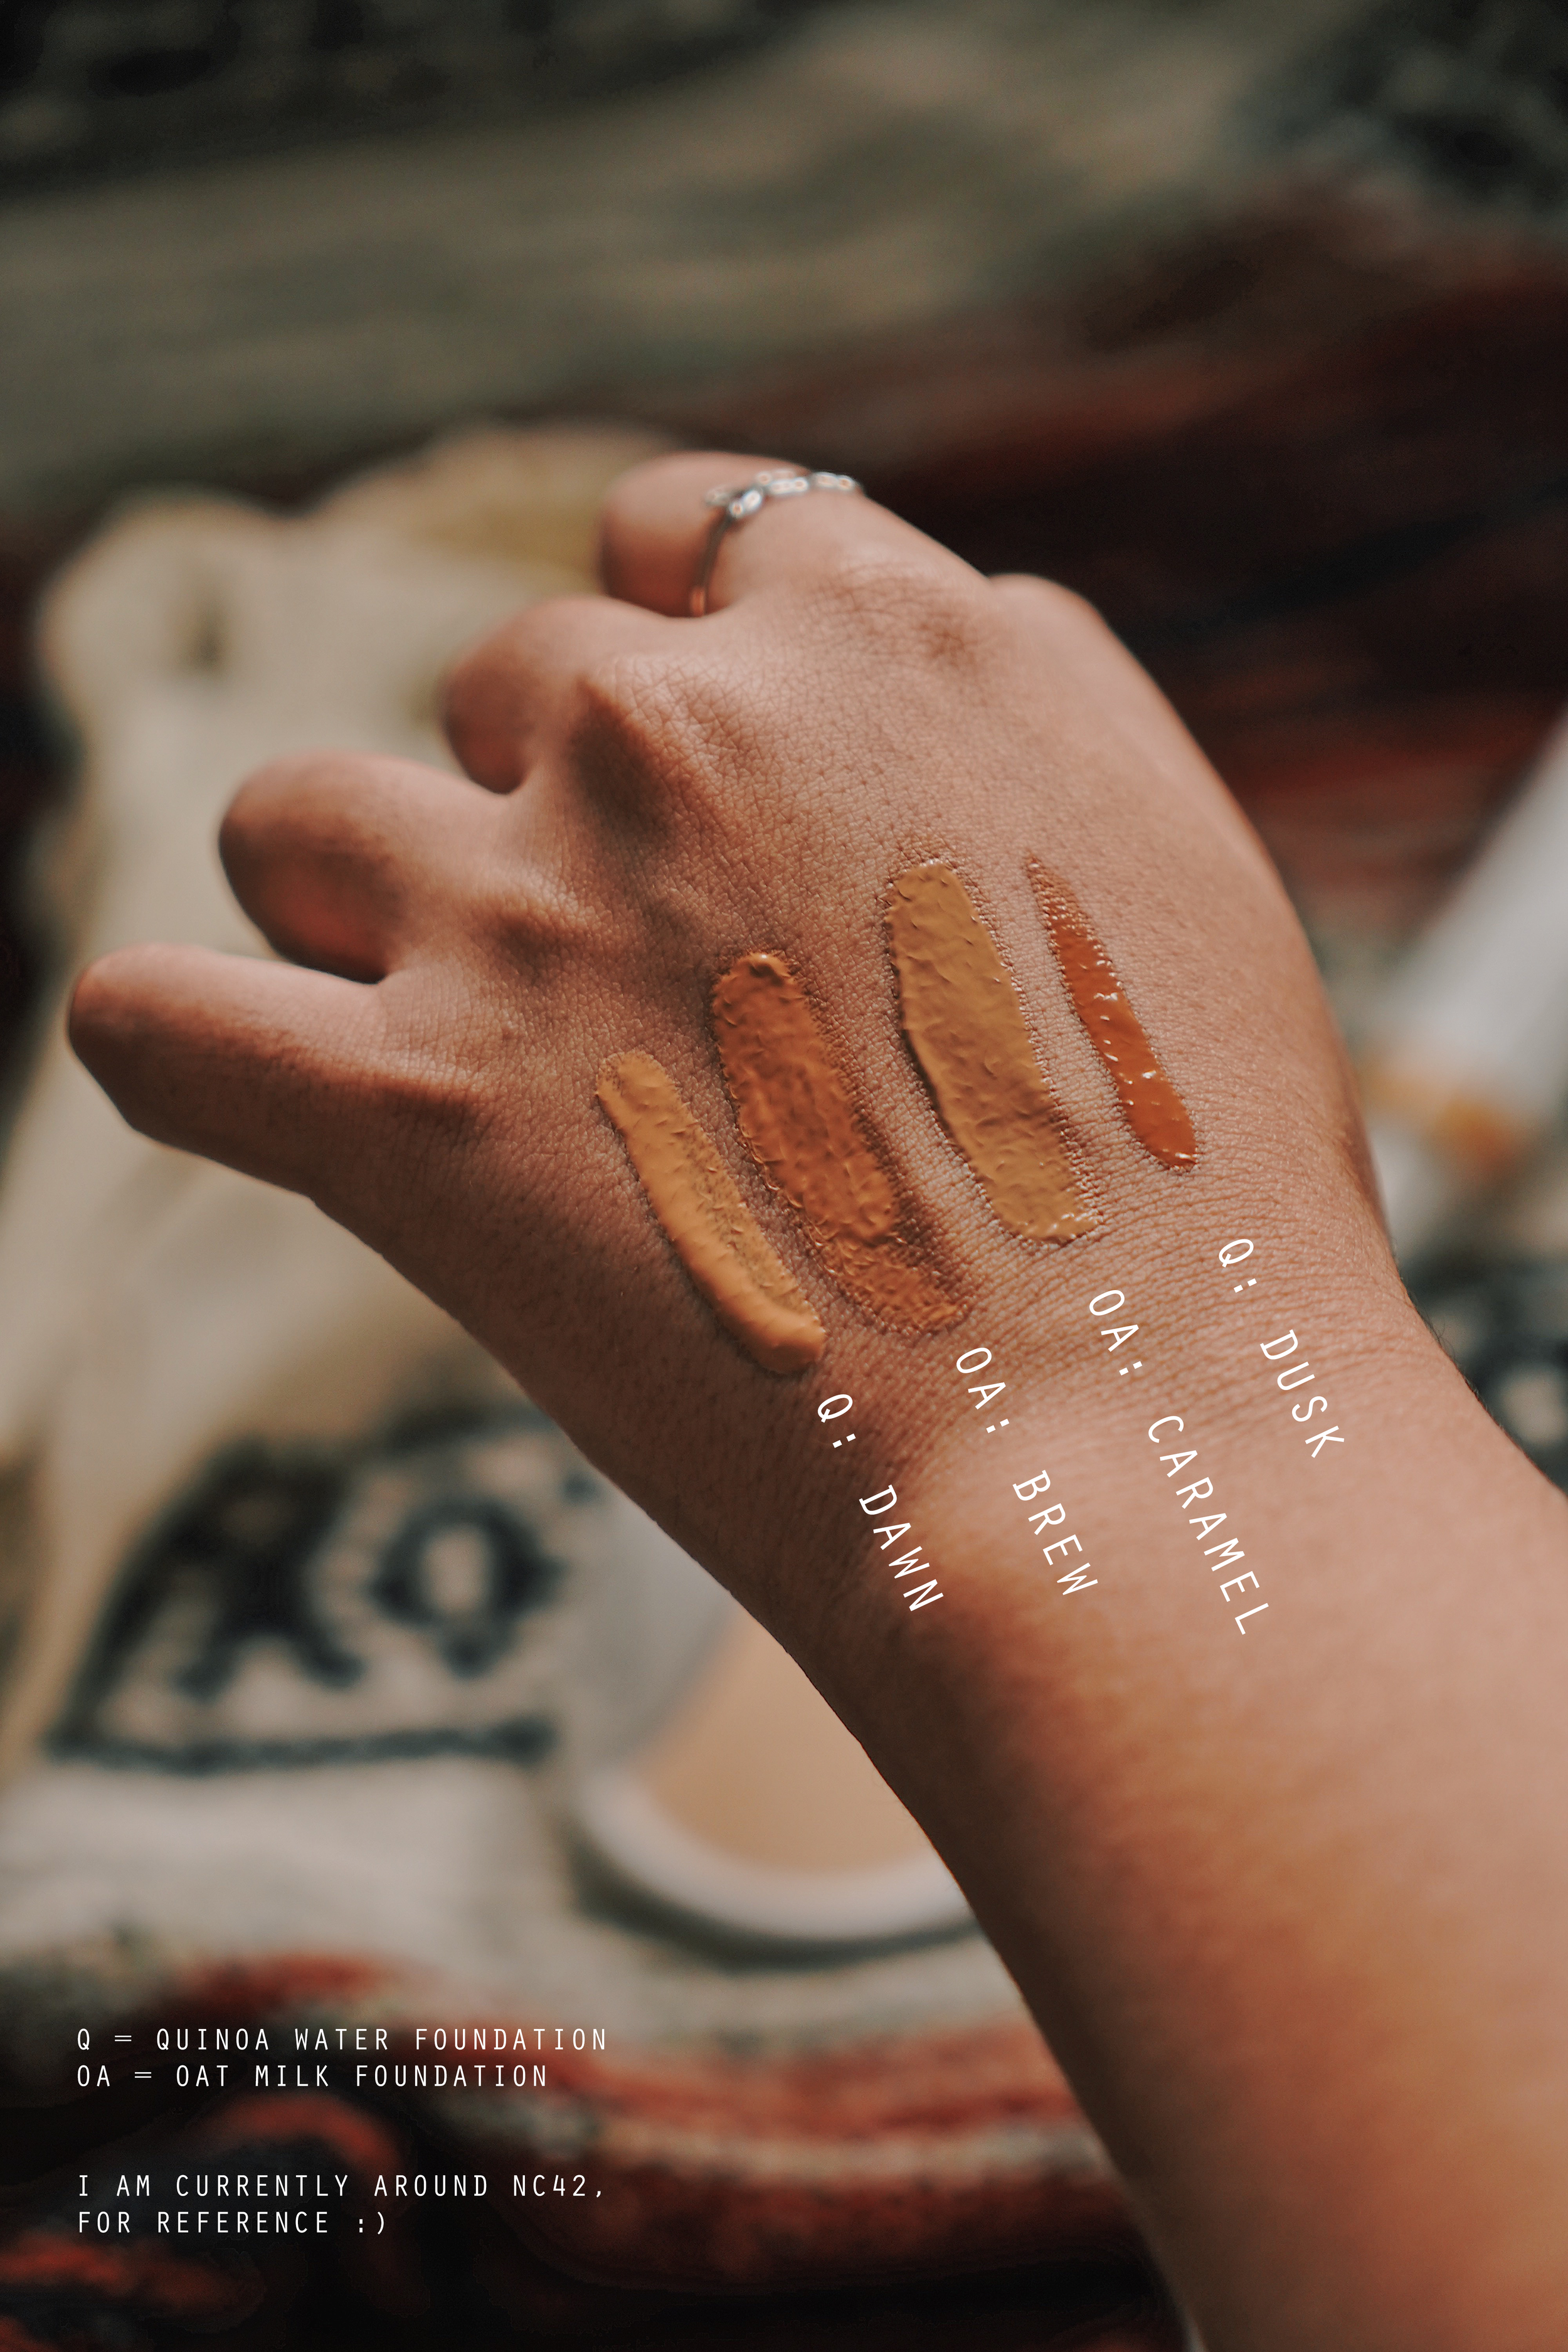 Shade comparison between the two foundations and my shade options (I am currently around NC42, for reference)